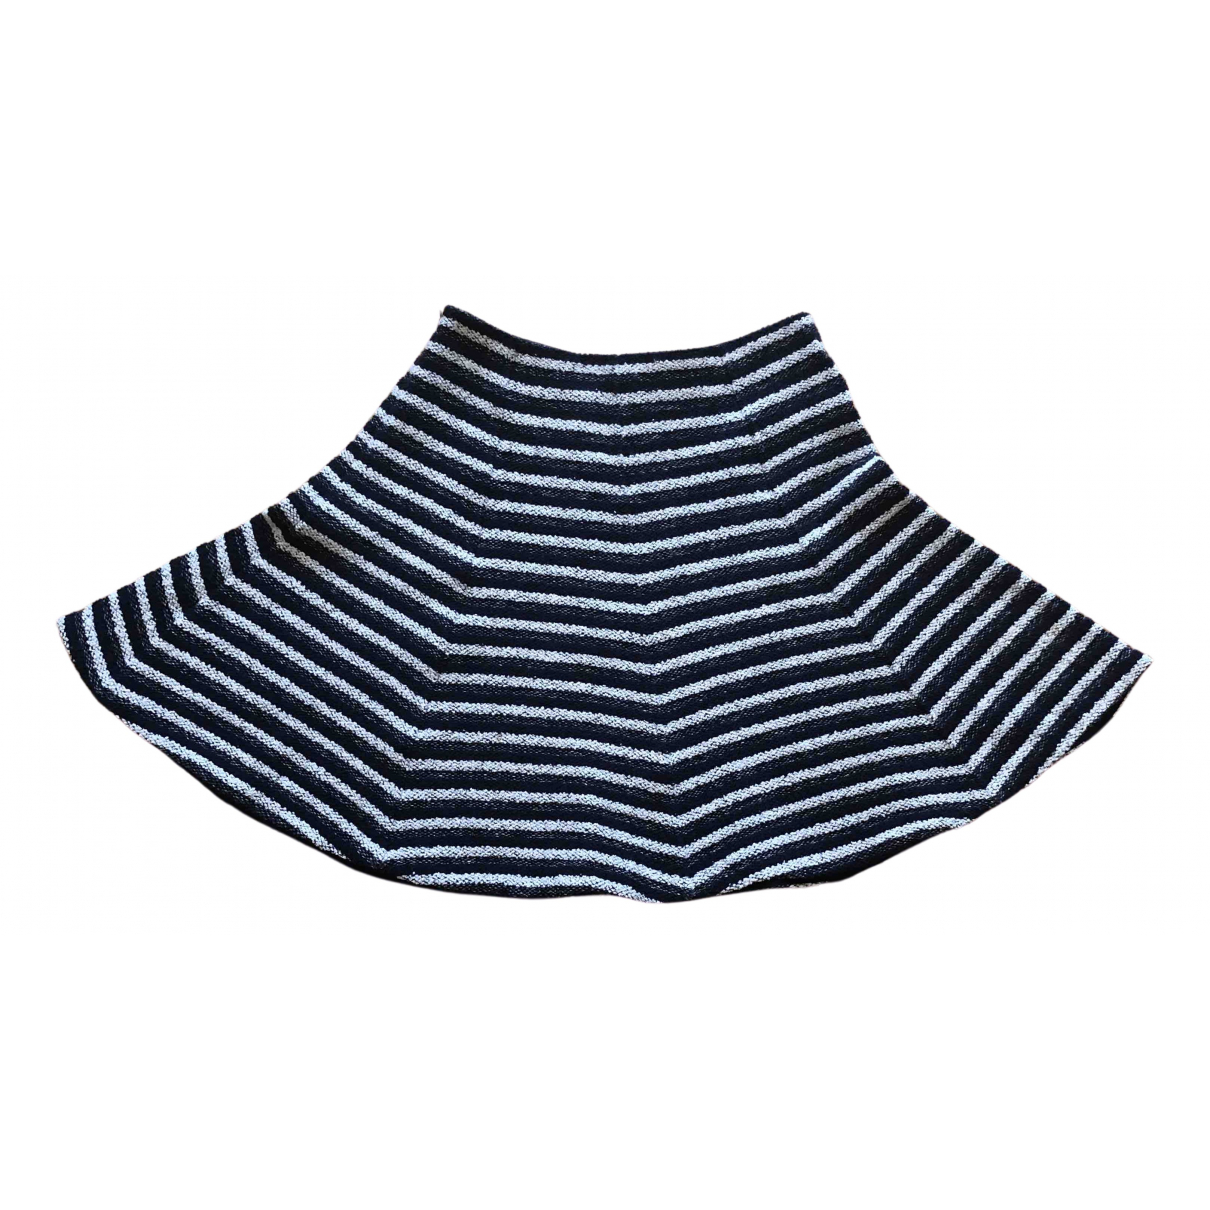 Theory \N Multicolour Cotton skirt for Women 00 0-5